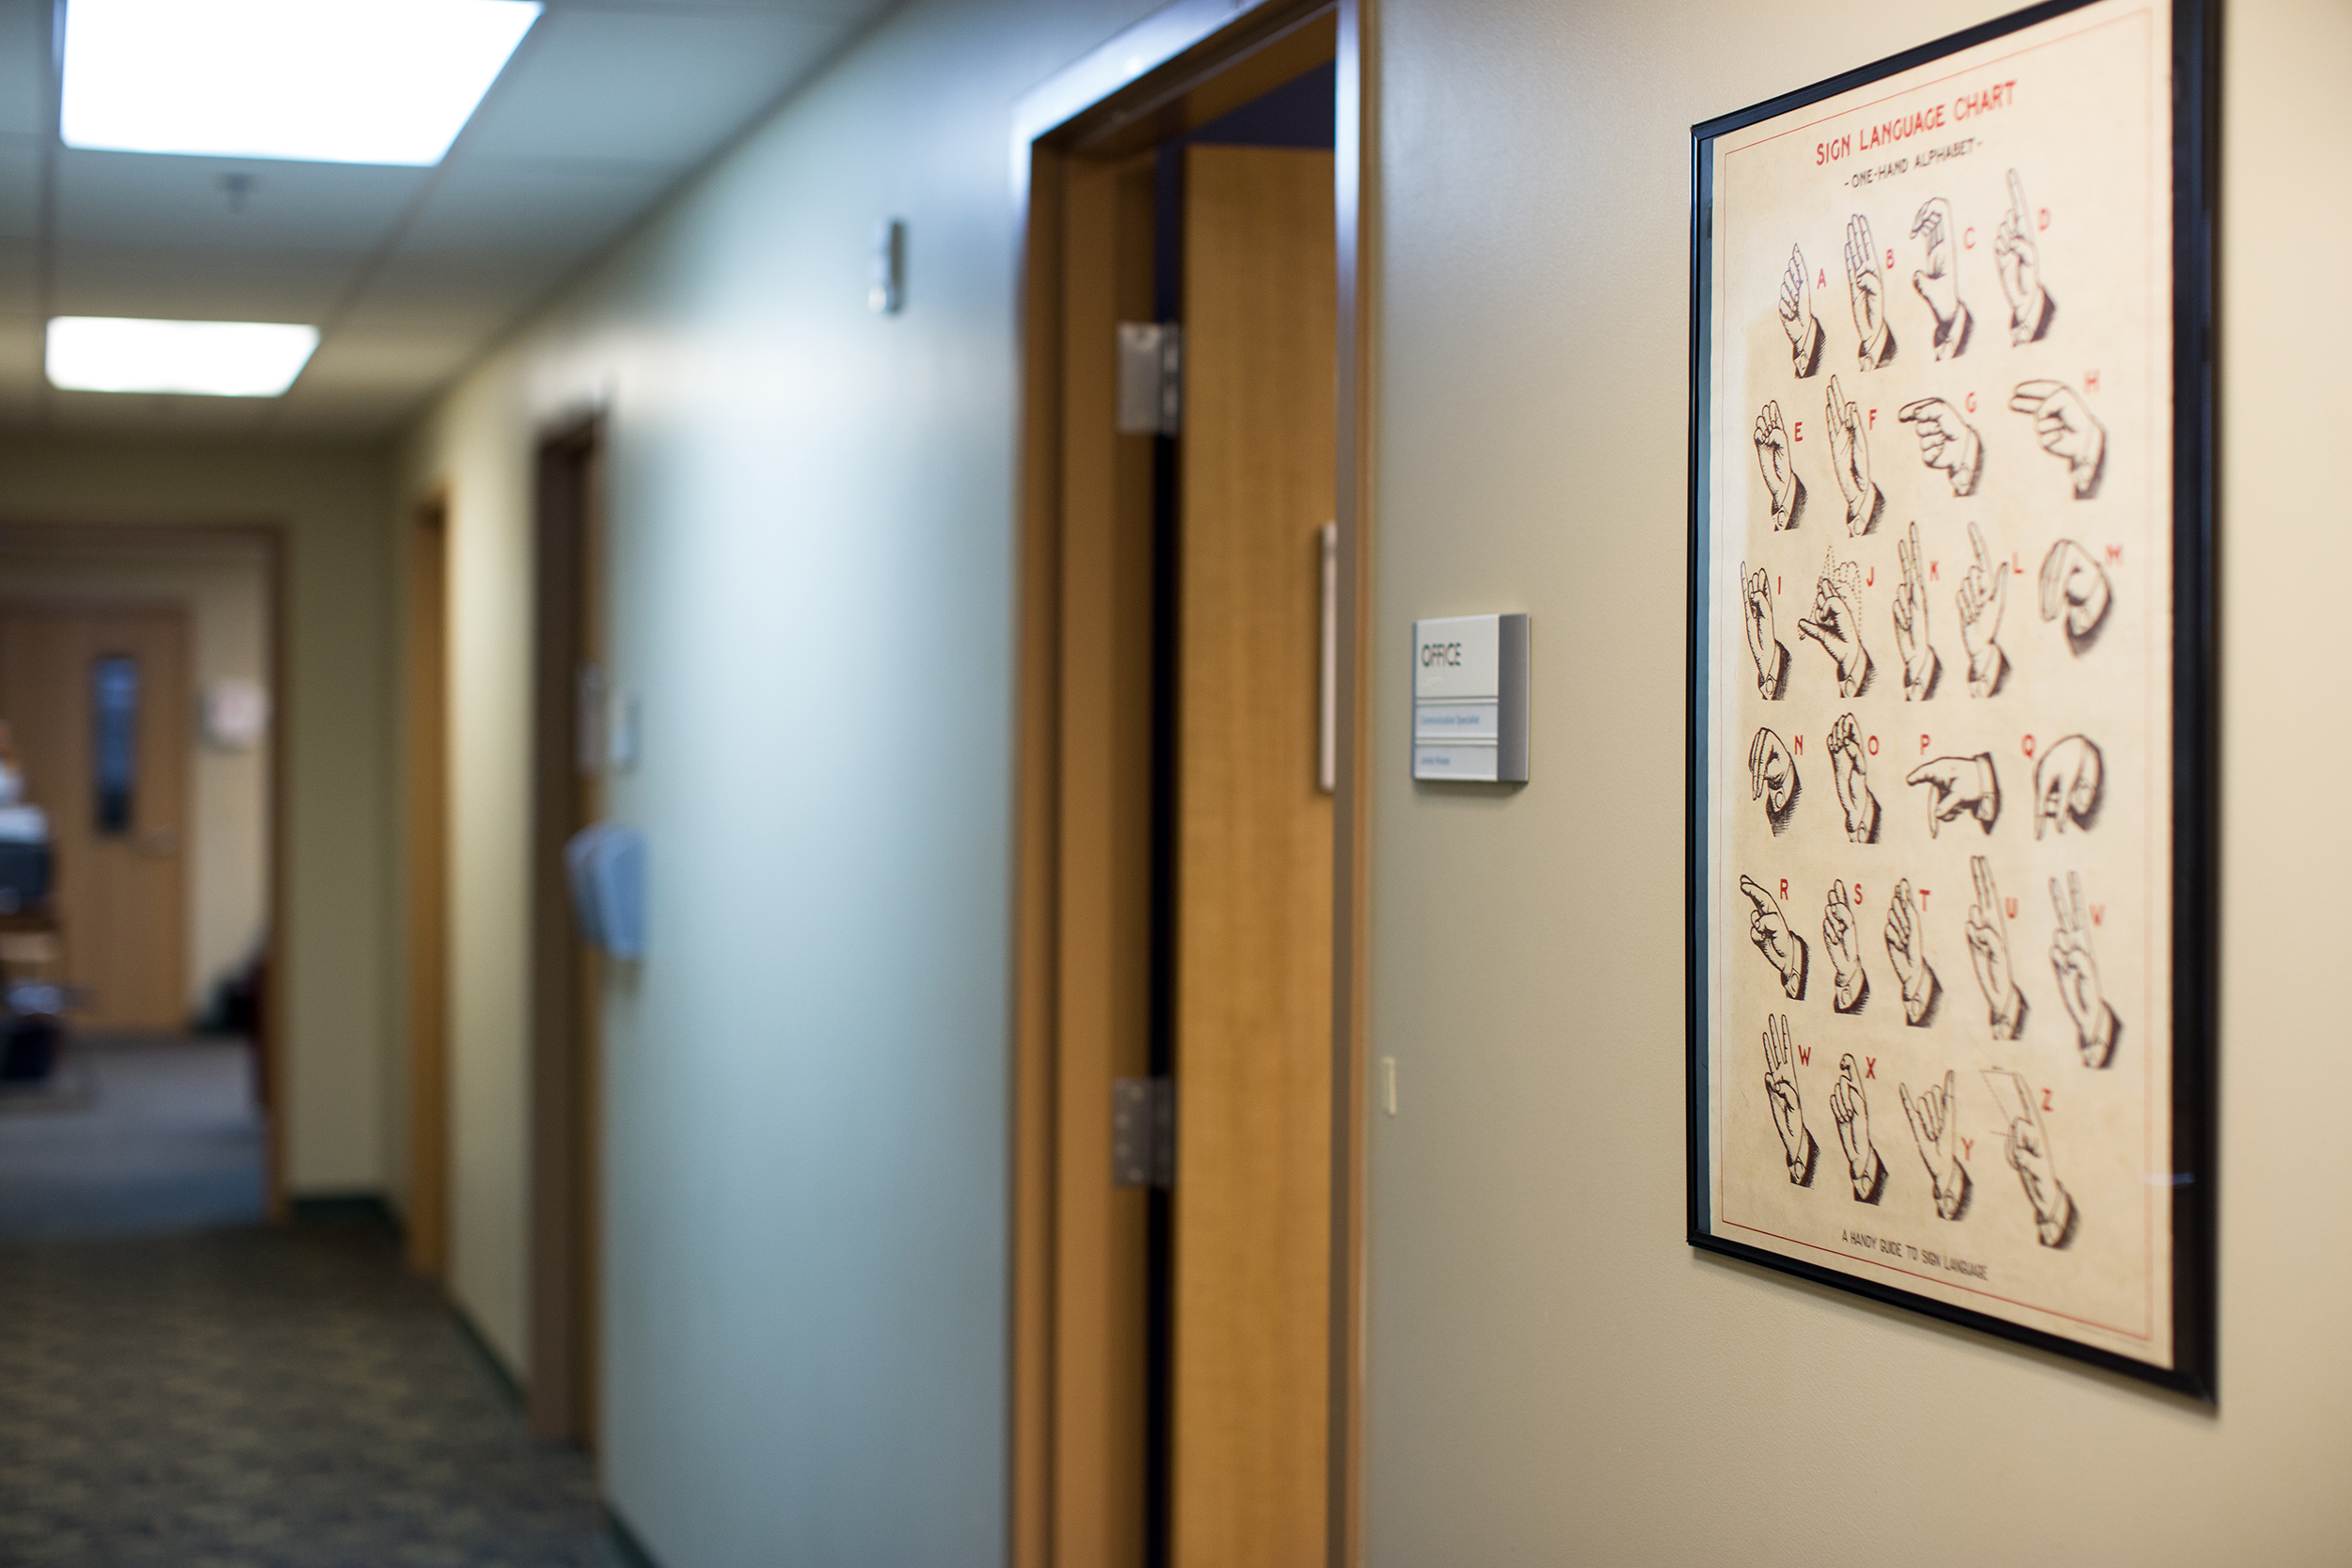 Picture of an office hallway with a framed poster of the alphabet is American Sign Language.